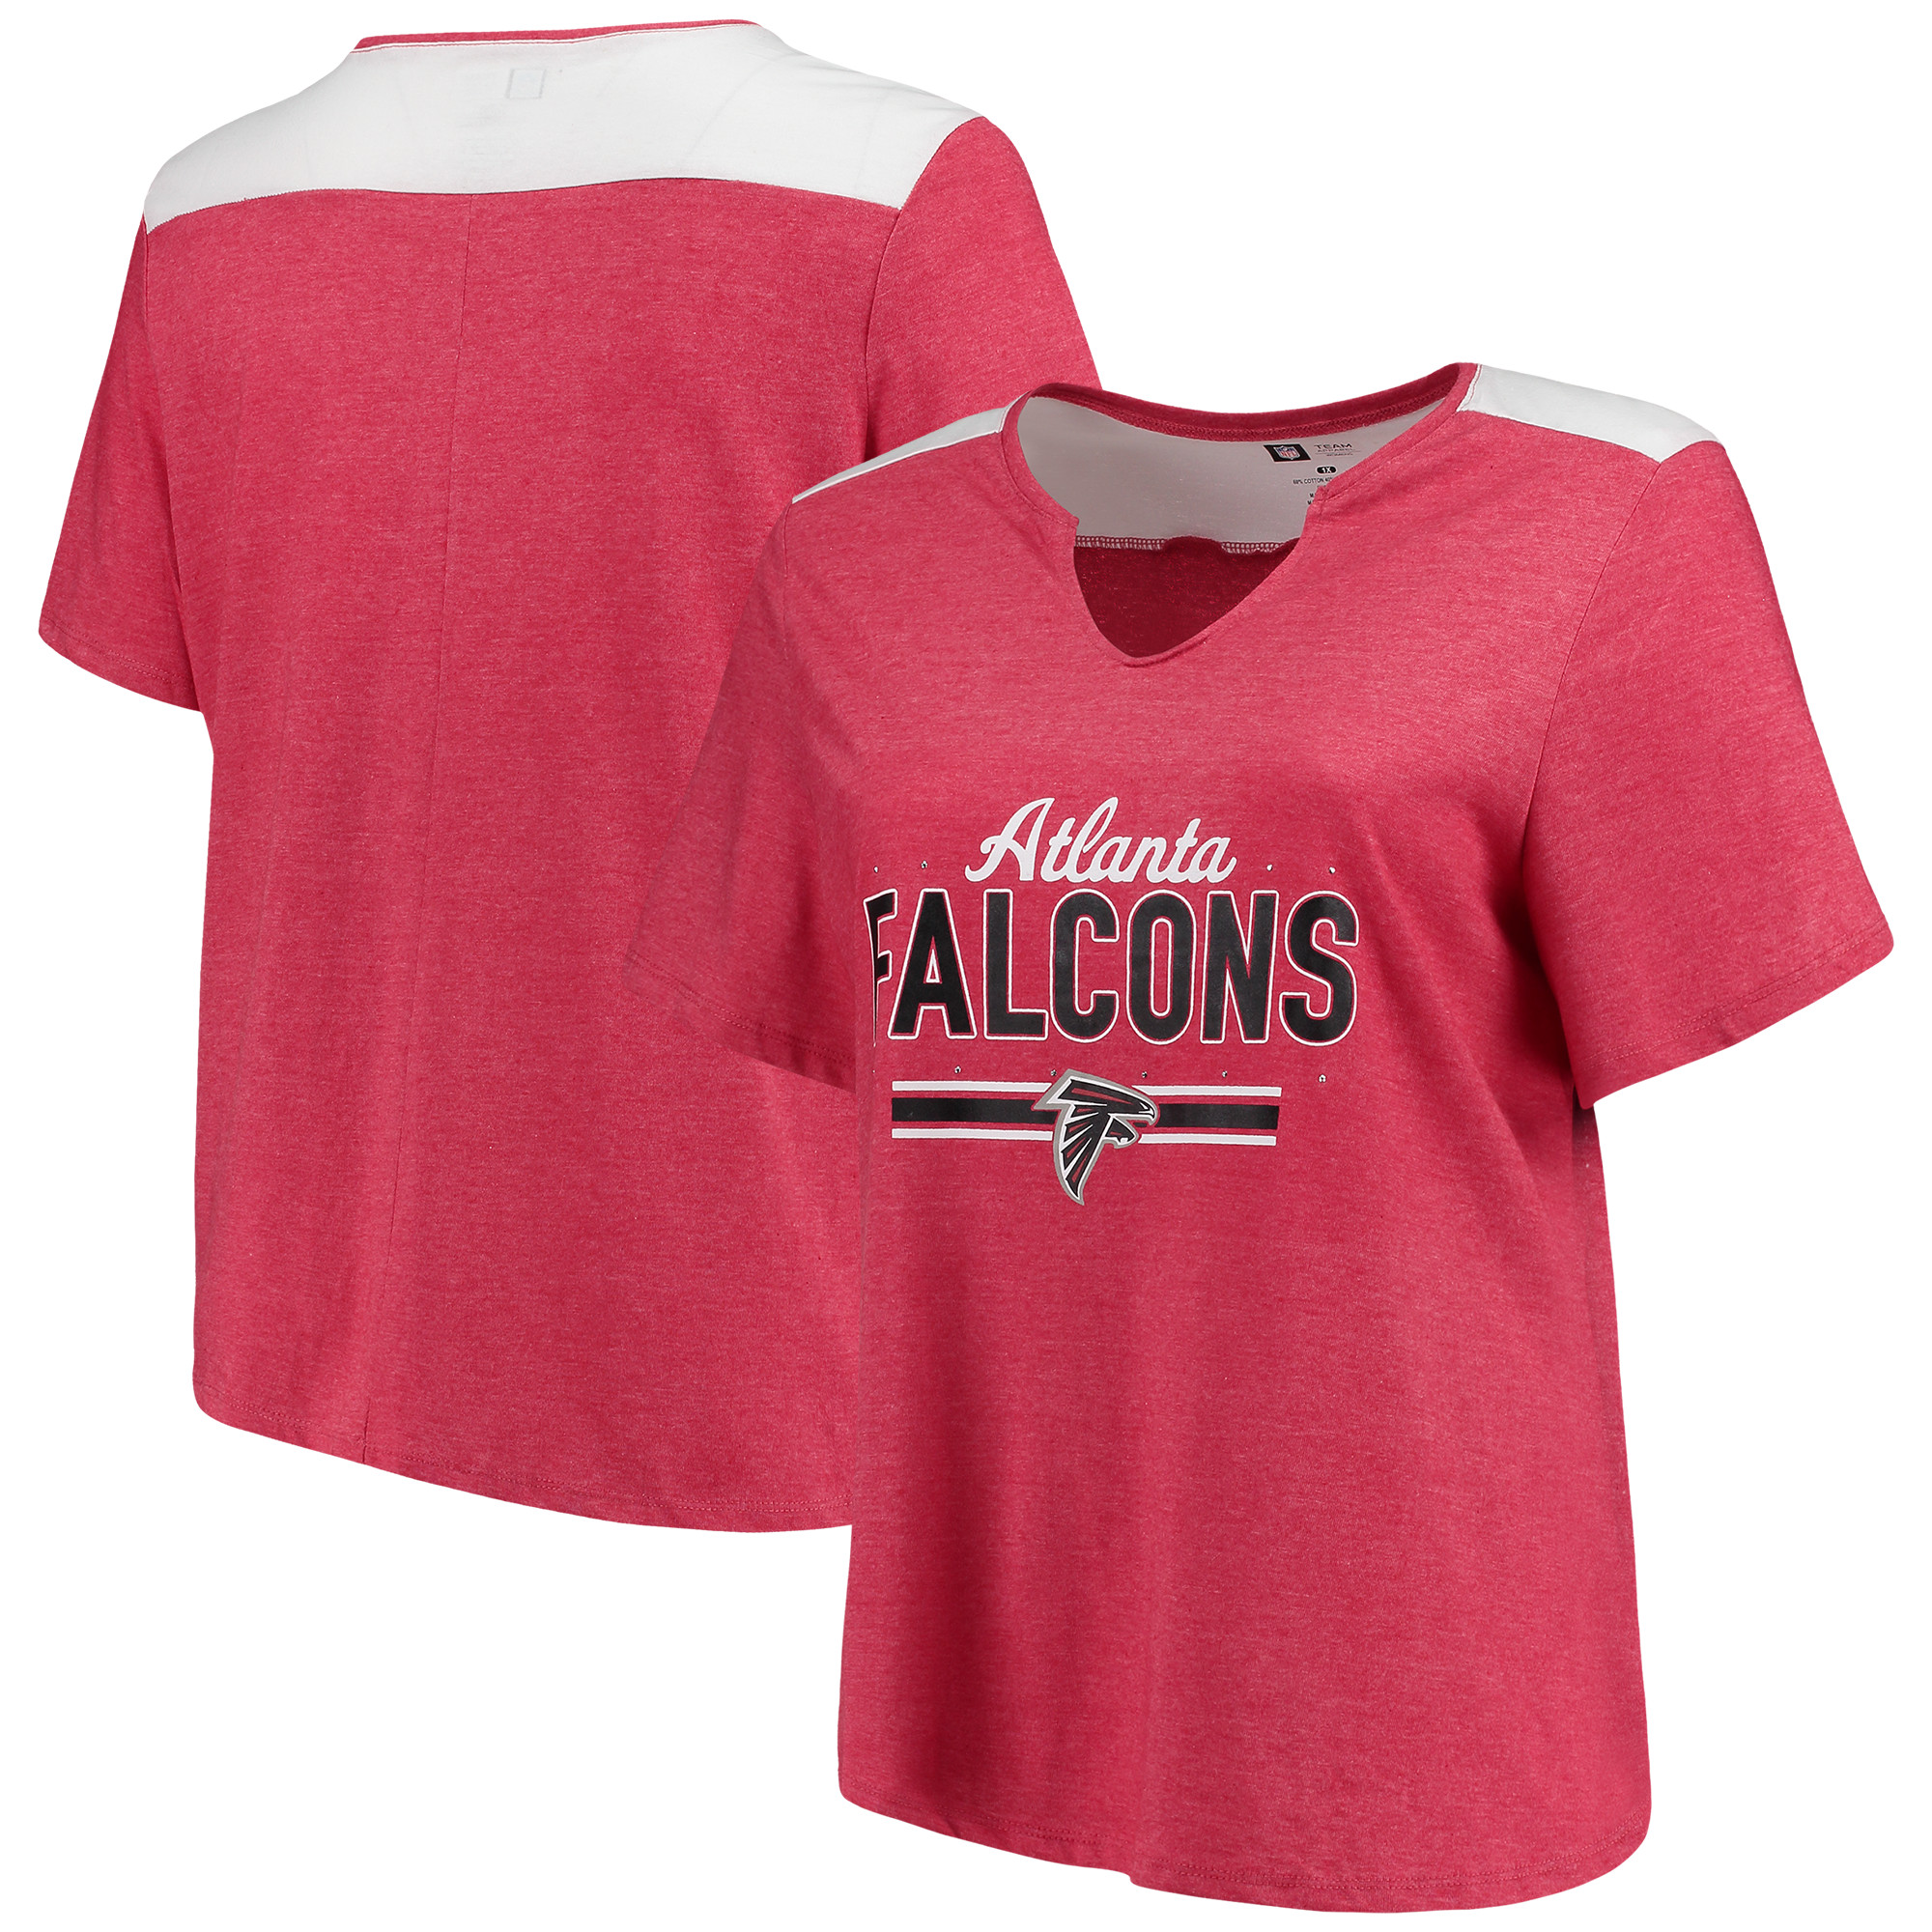 Atlanta Falcons Majestic Women's Notch Neck Plus Size T-Shirt - Heathered Red